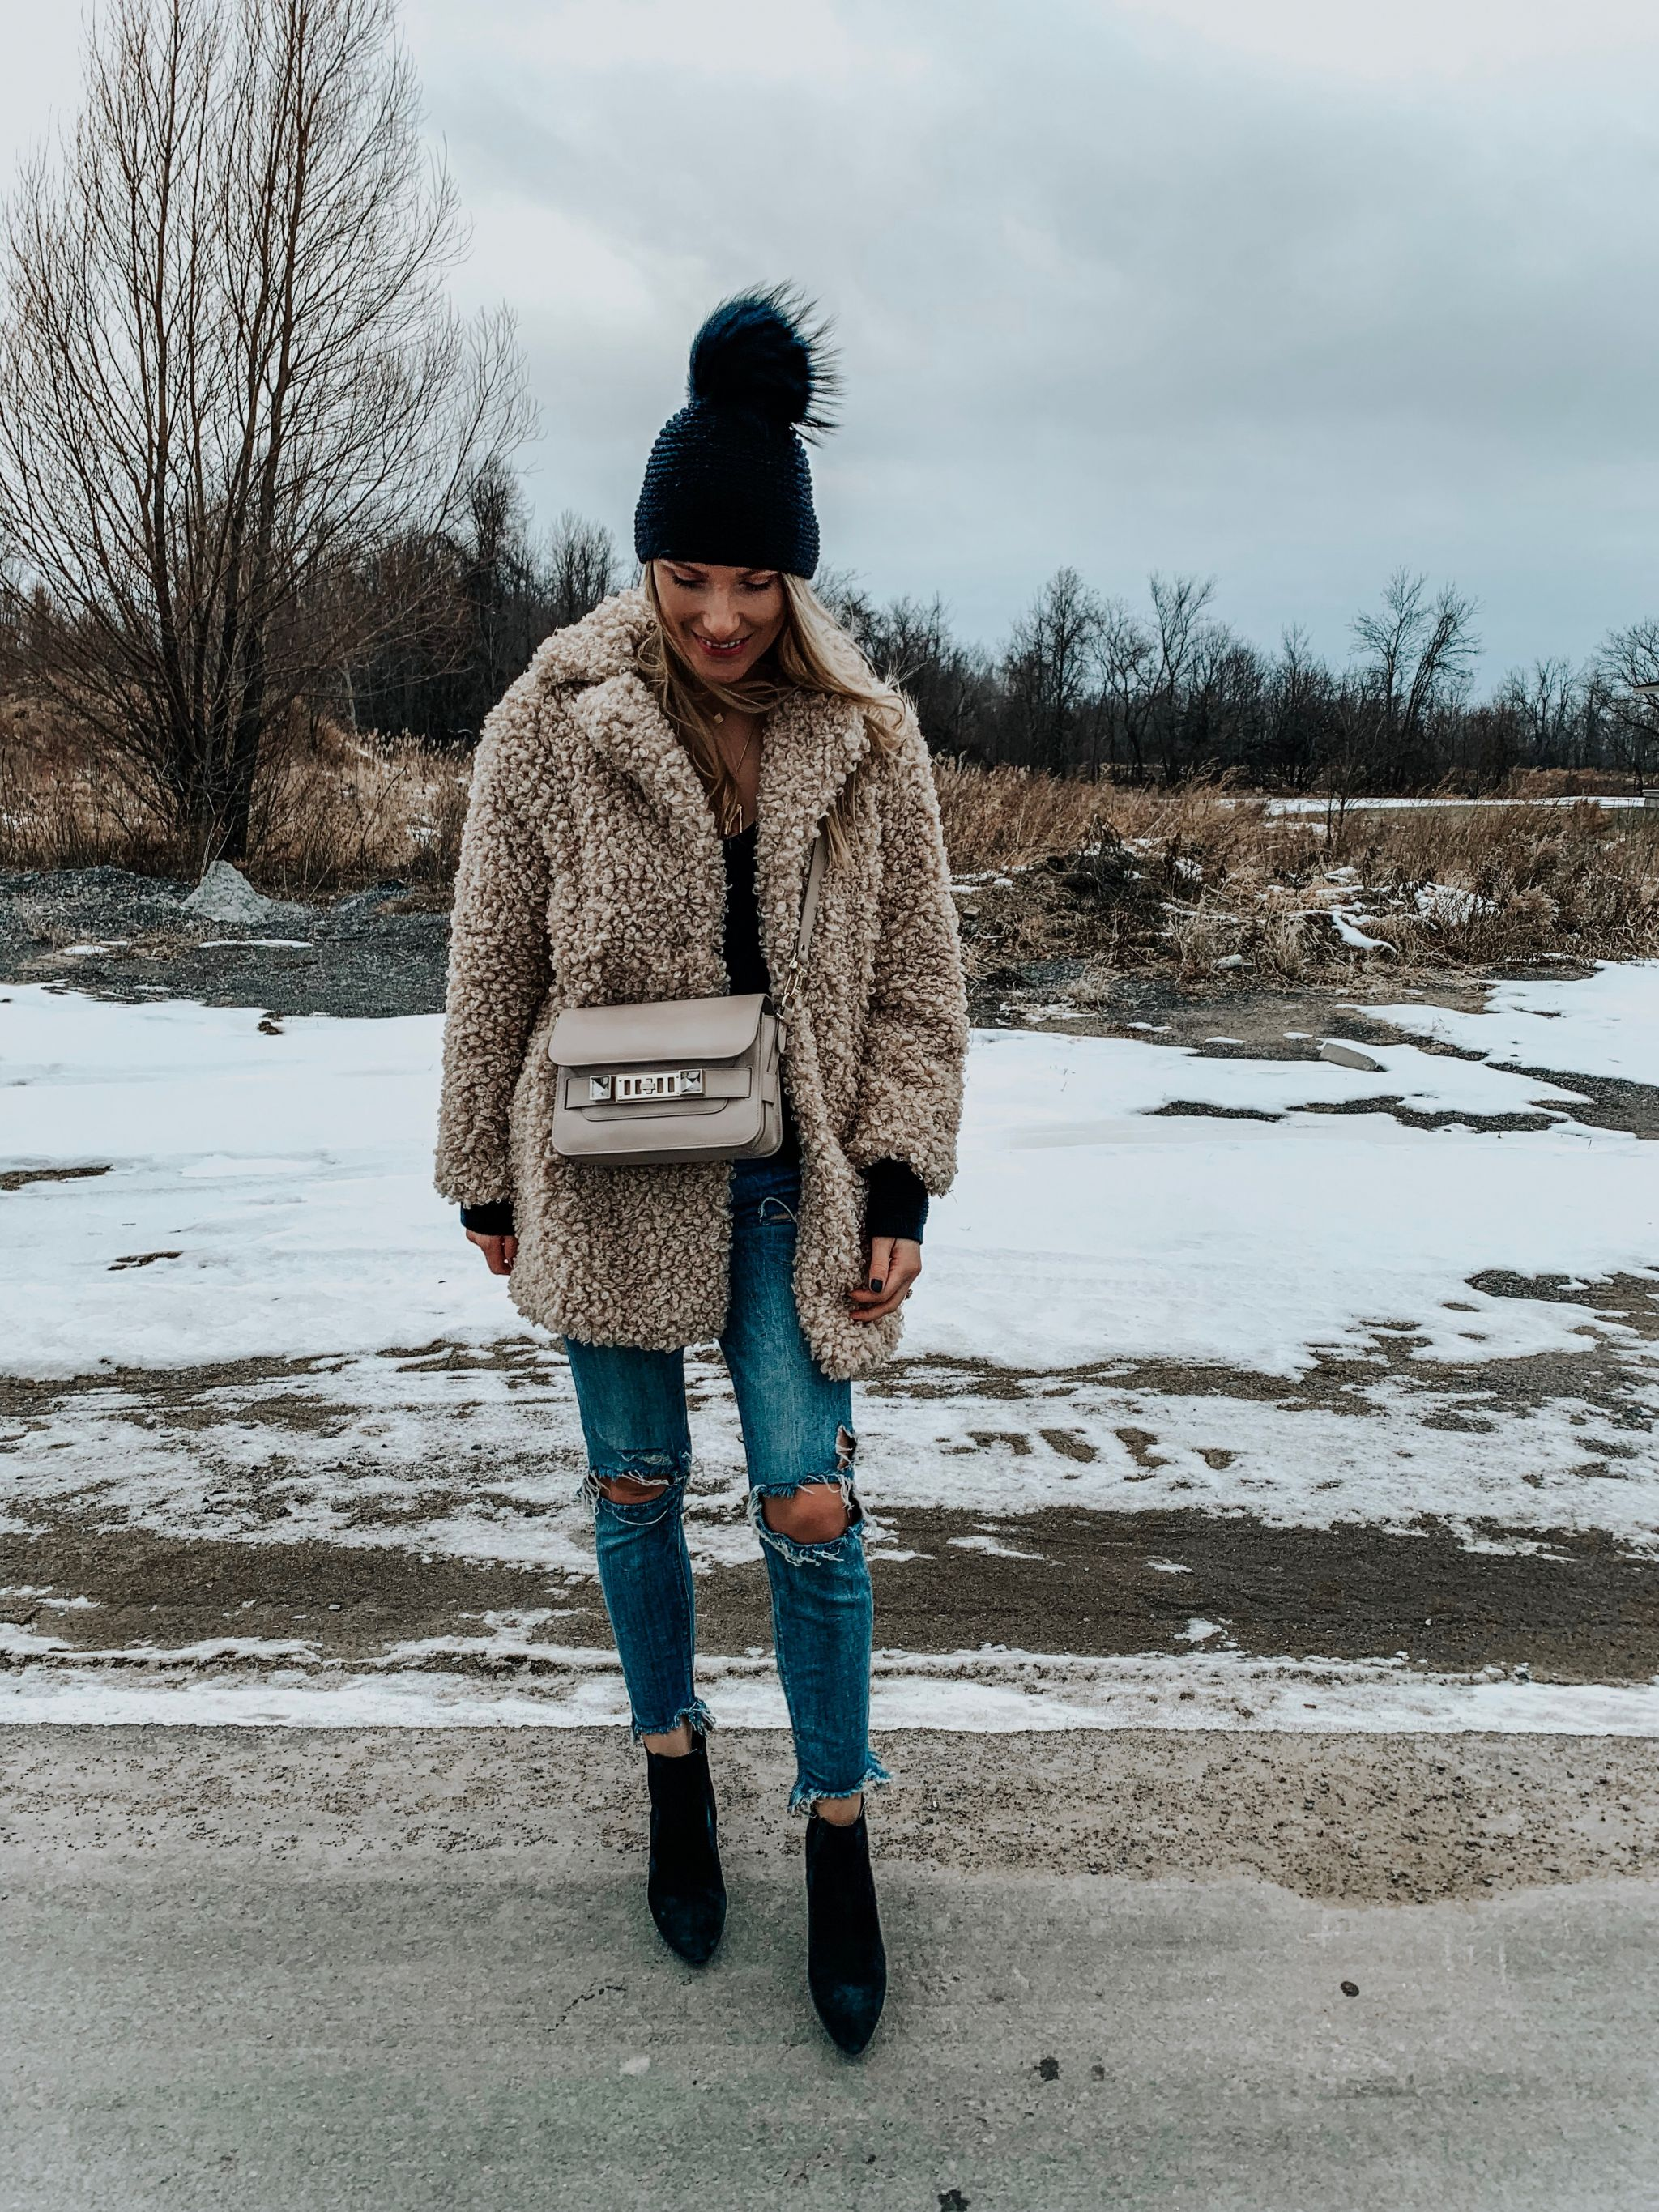 1 girl wearing winter hat and coat in the snow, stylish winter outfit